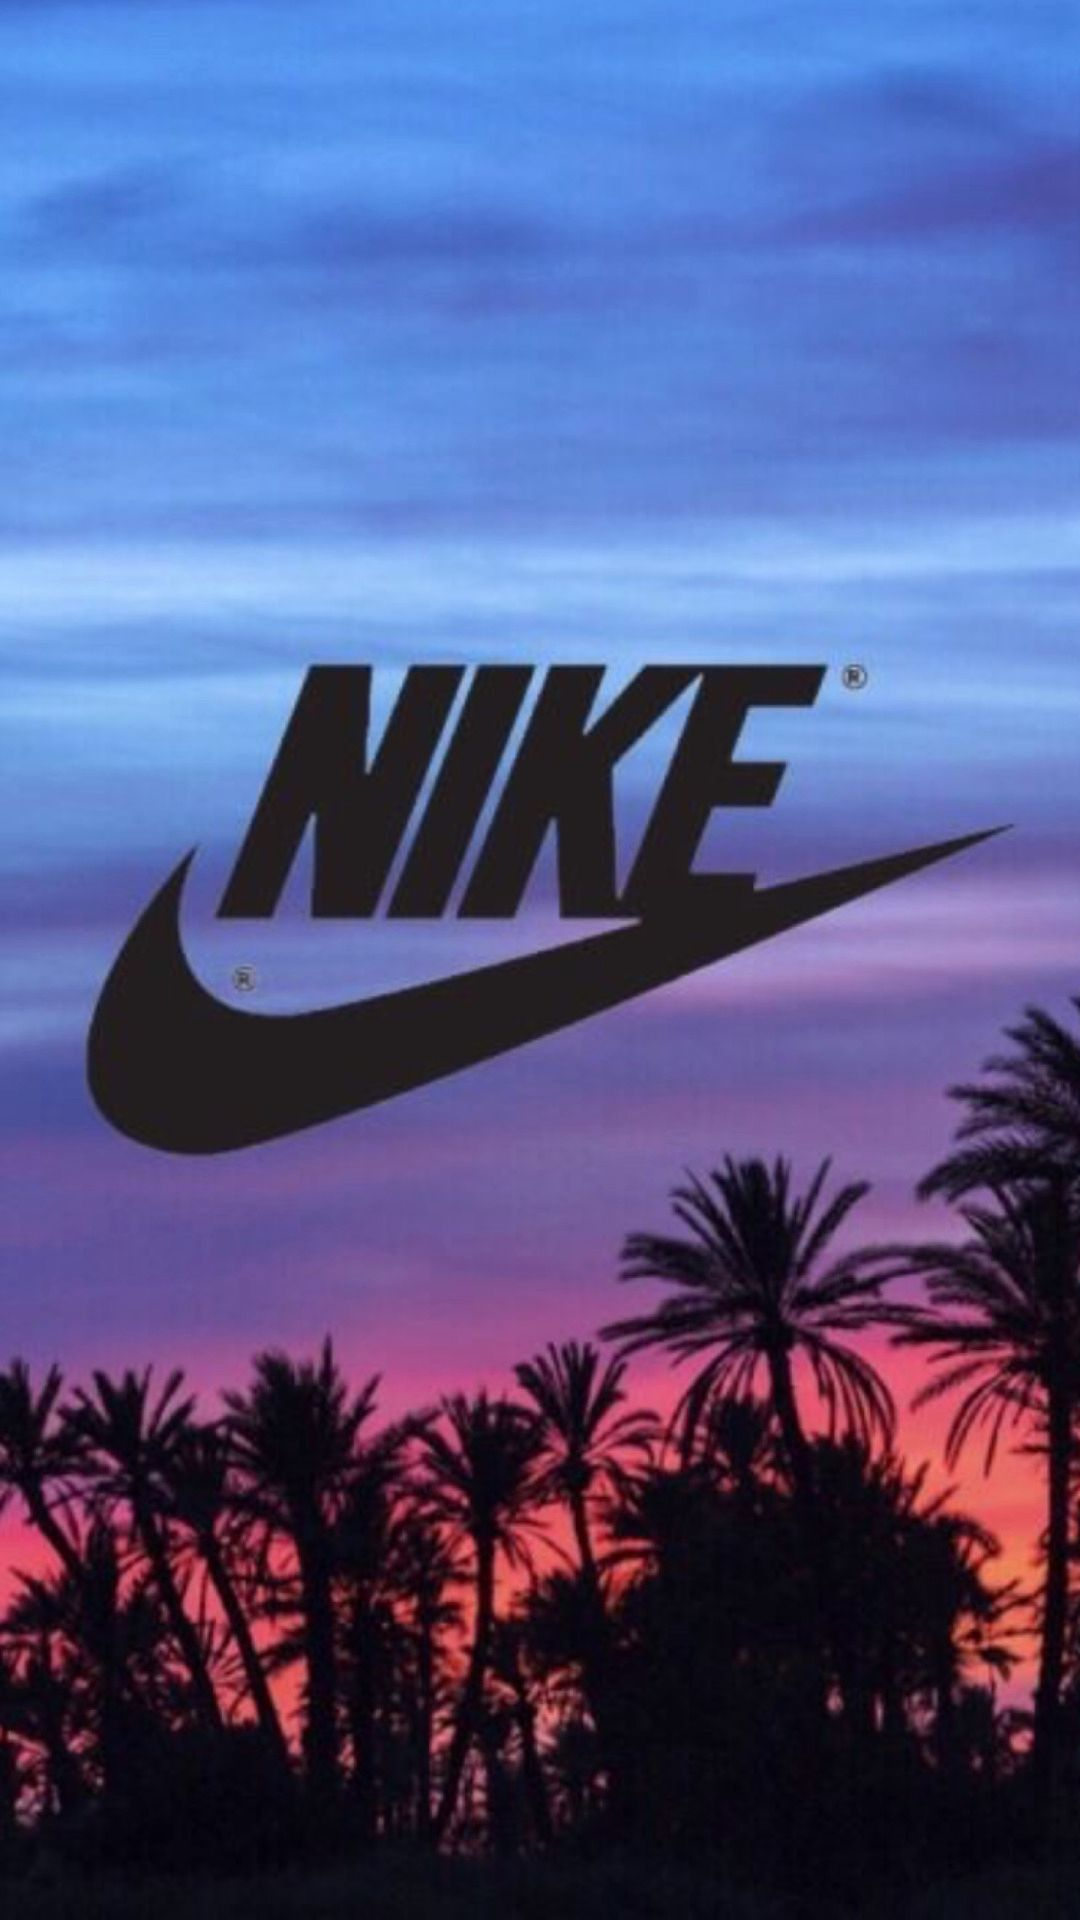 Nike Backgrounds For Phones : backgrounds, phones, Phone, Wallpapers, Wallpaper